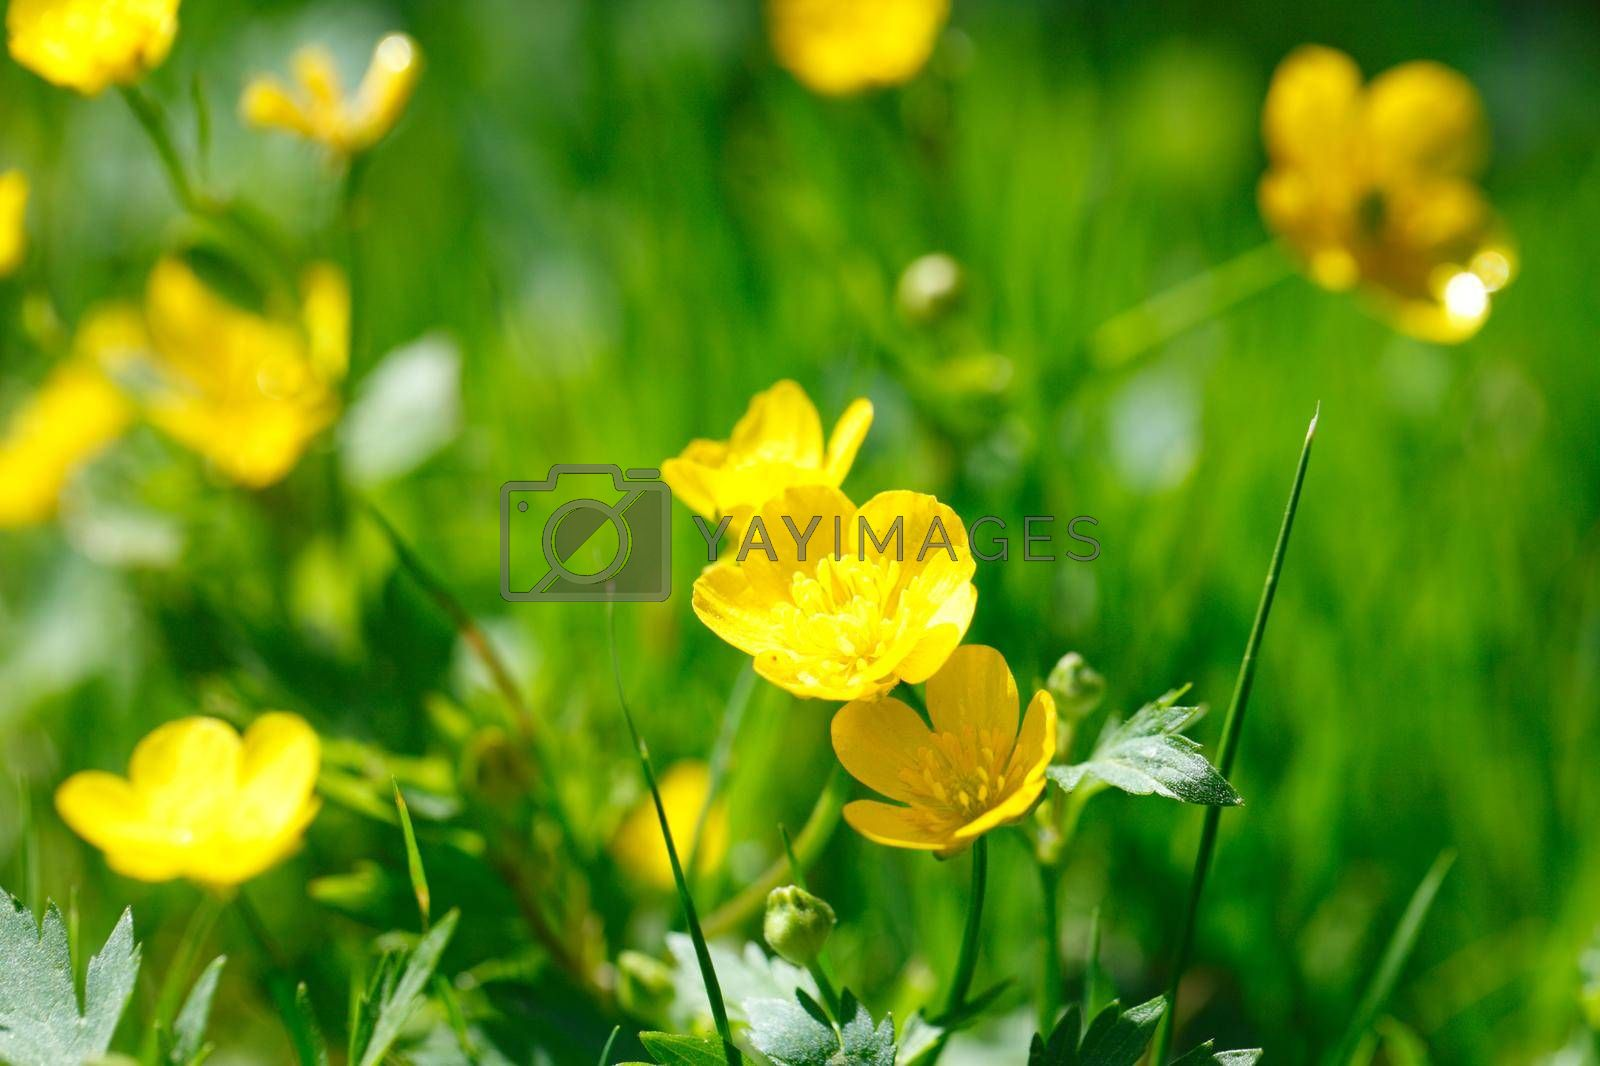 Royalty free image of Yellow buttercup in green grass by Yellowj